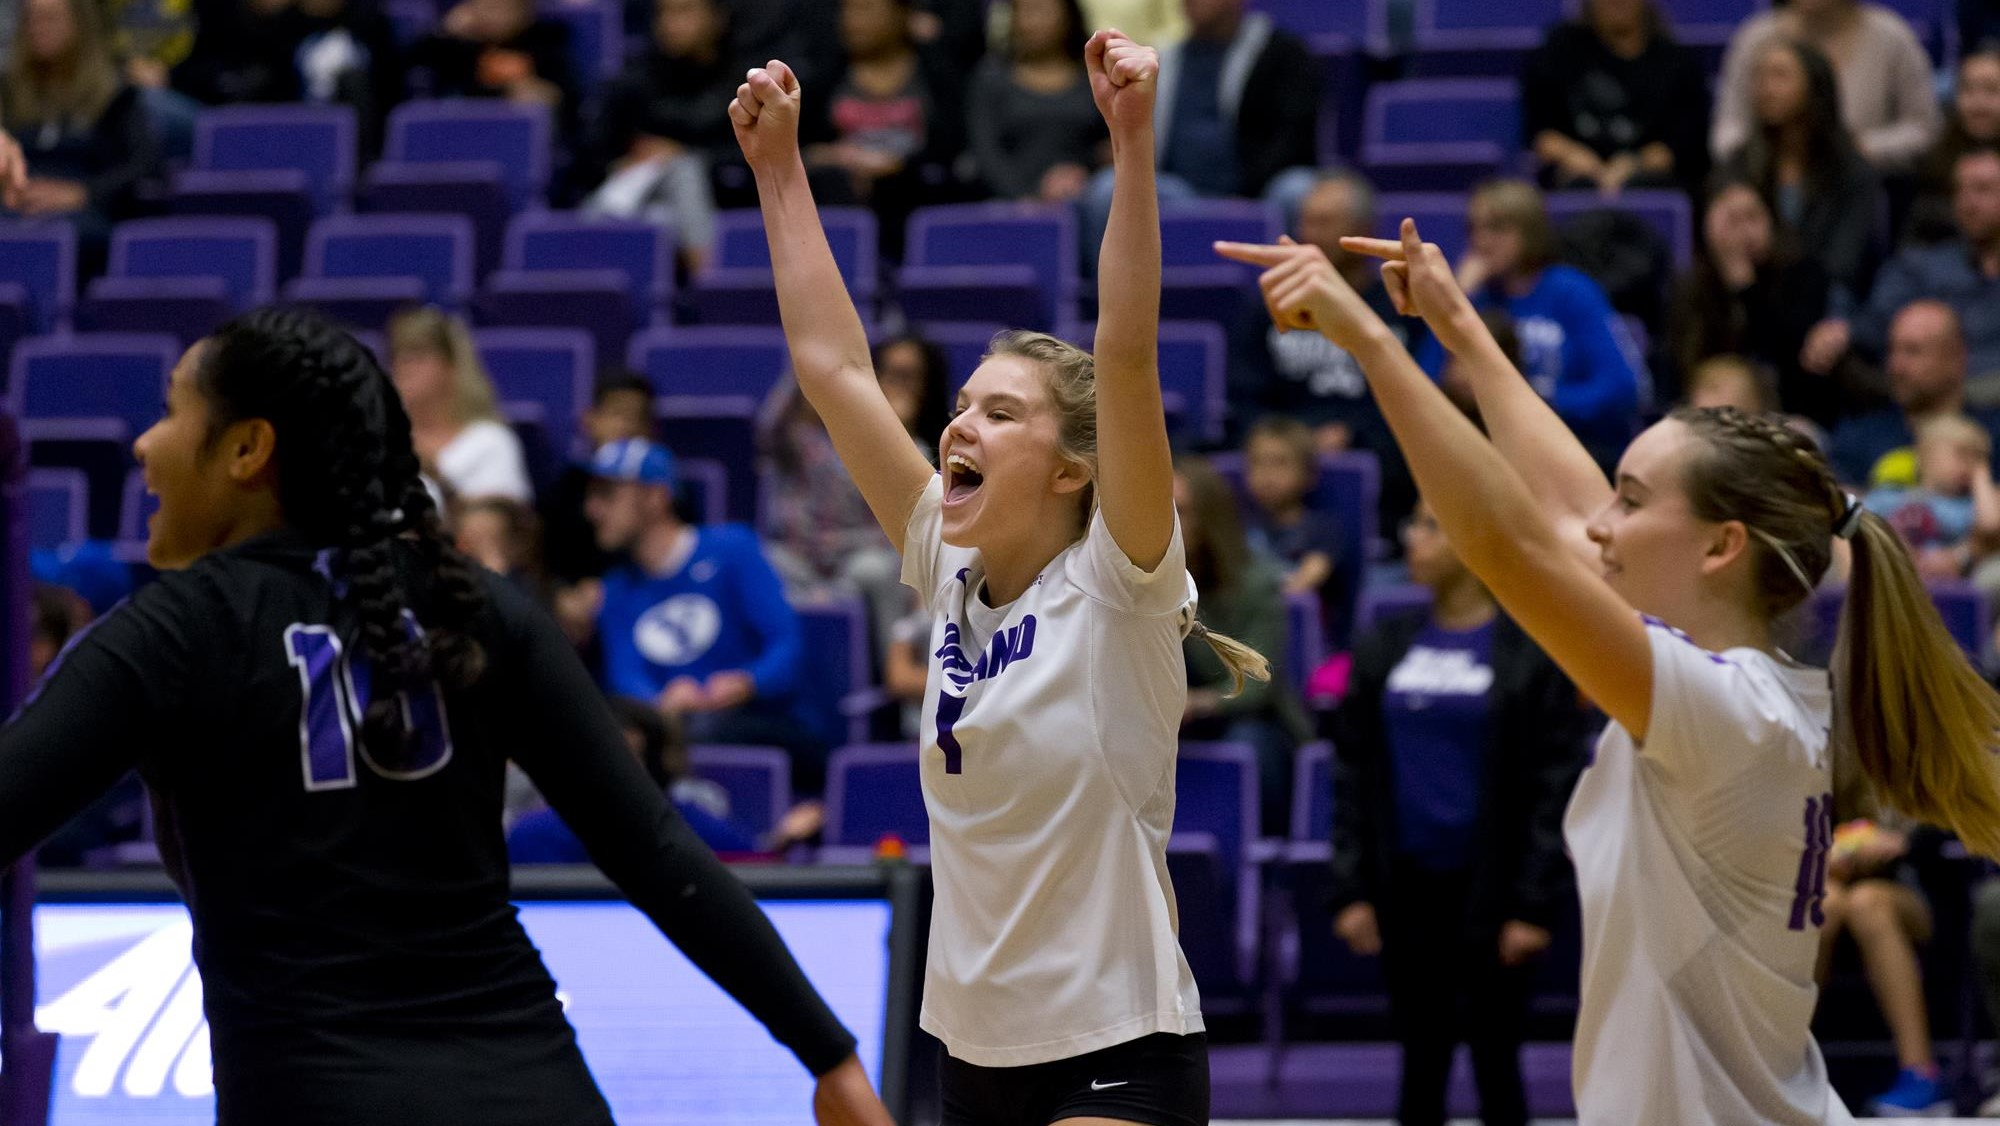 Pilots Complete Fifth Set Comeback, Defeat USF